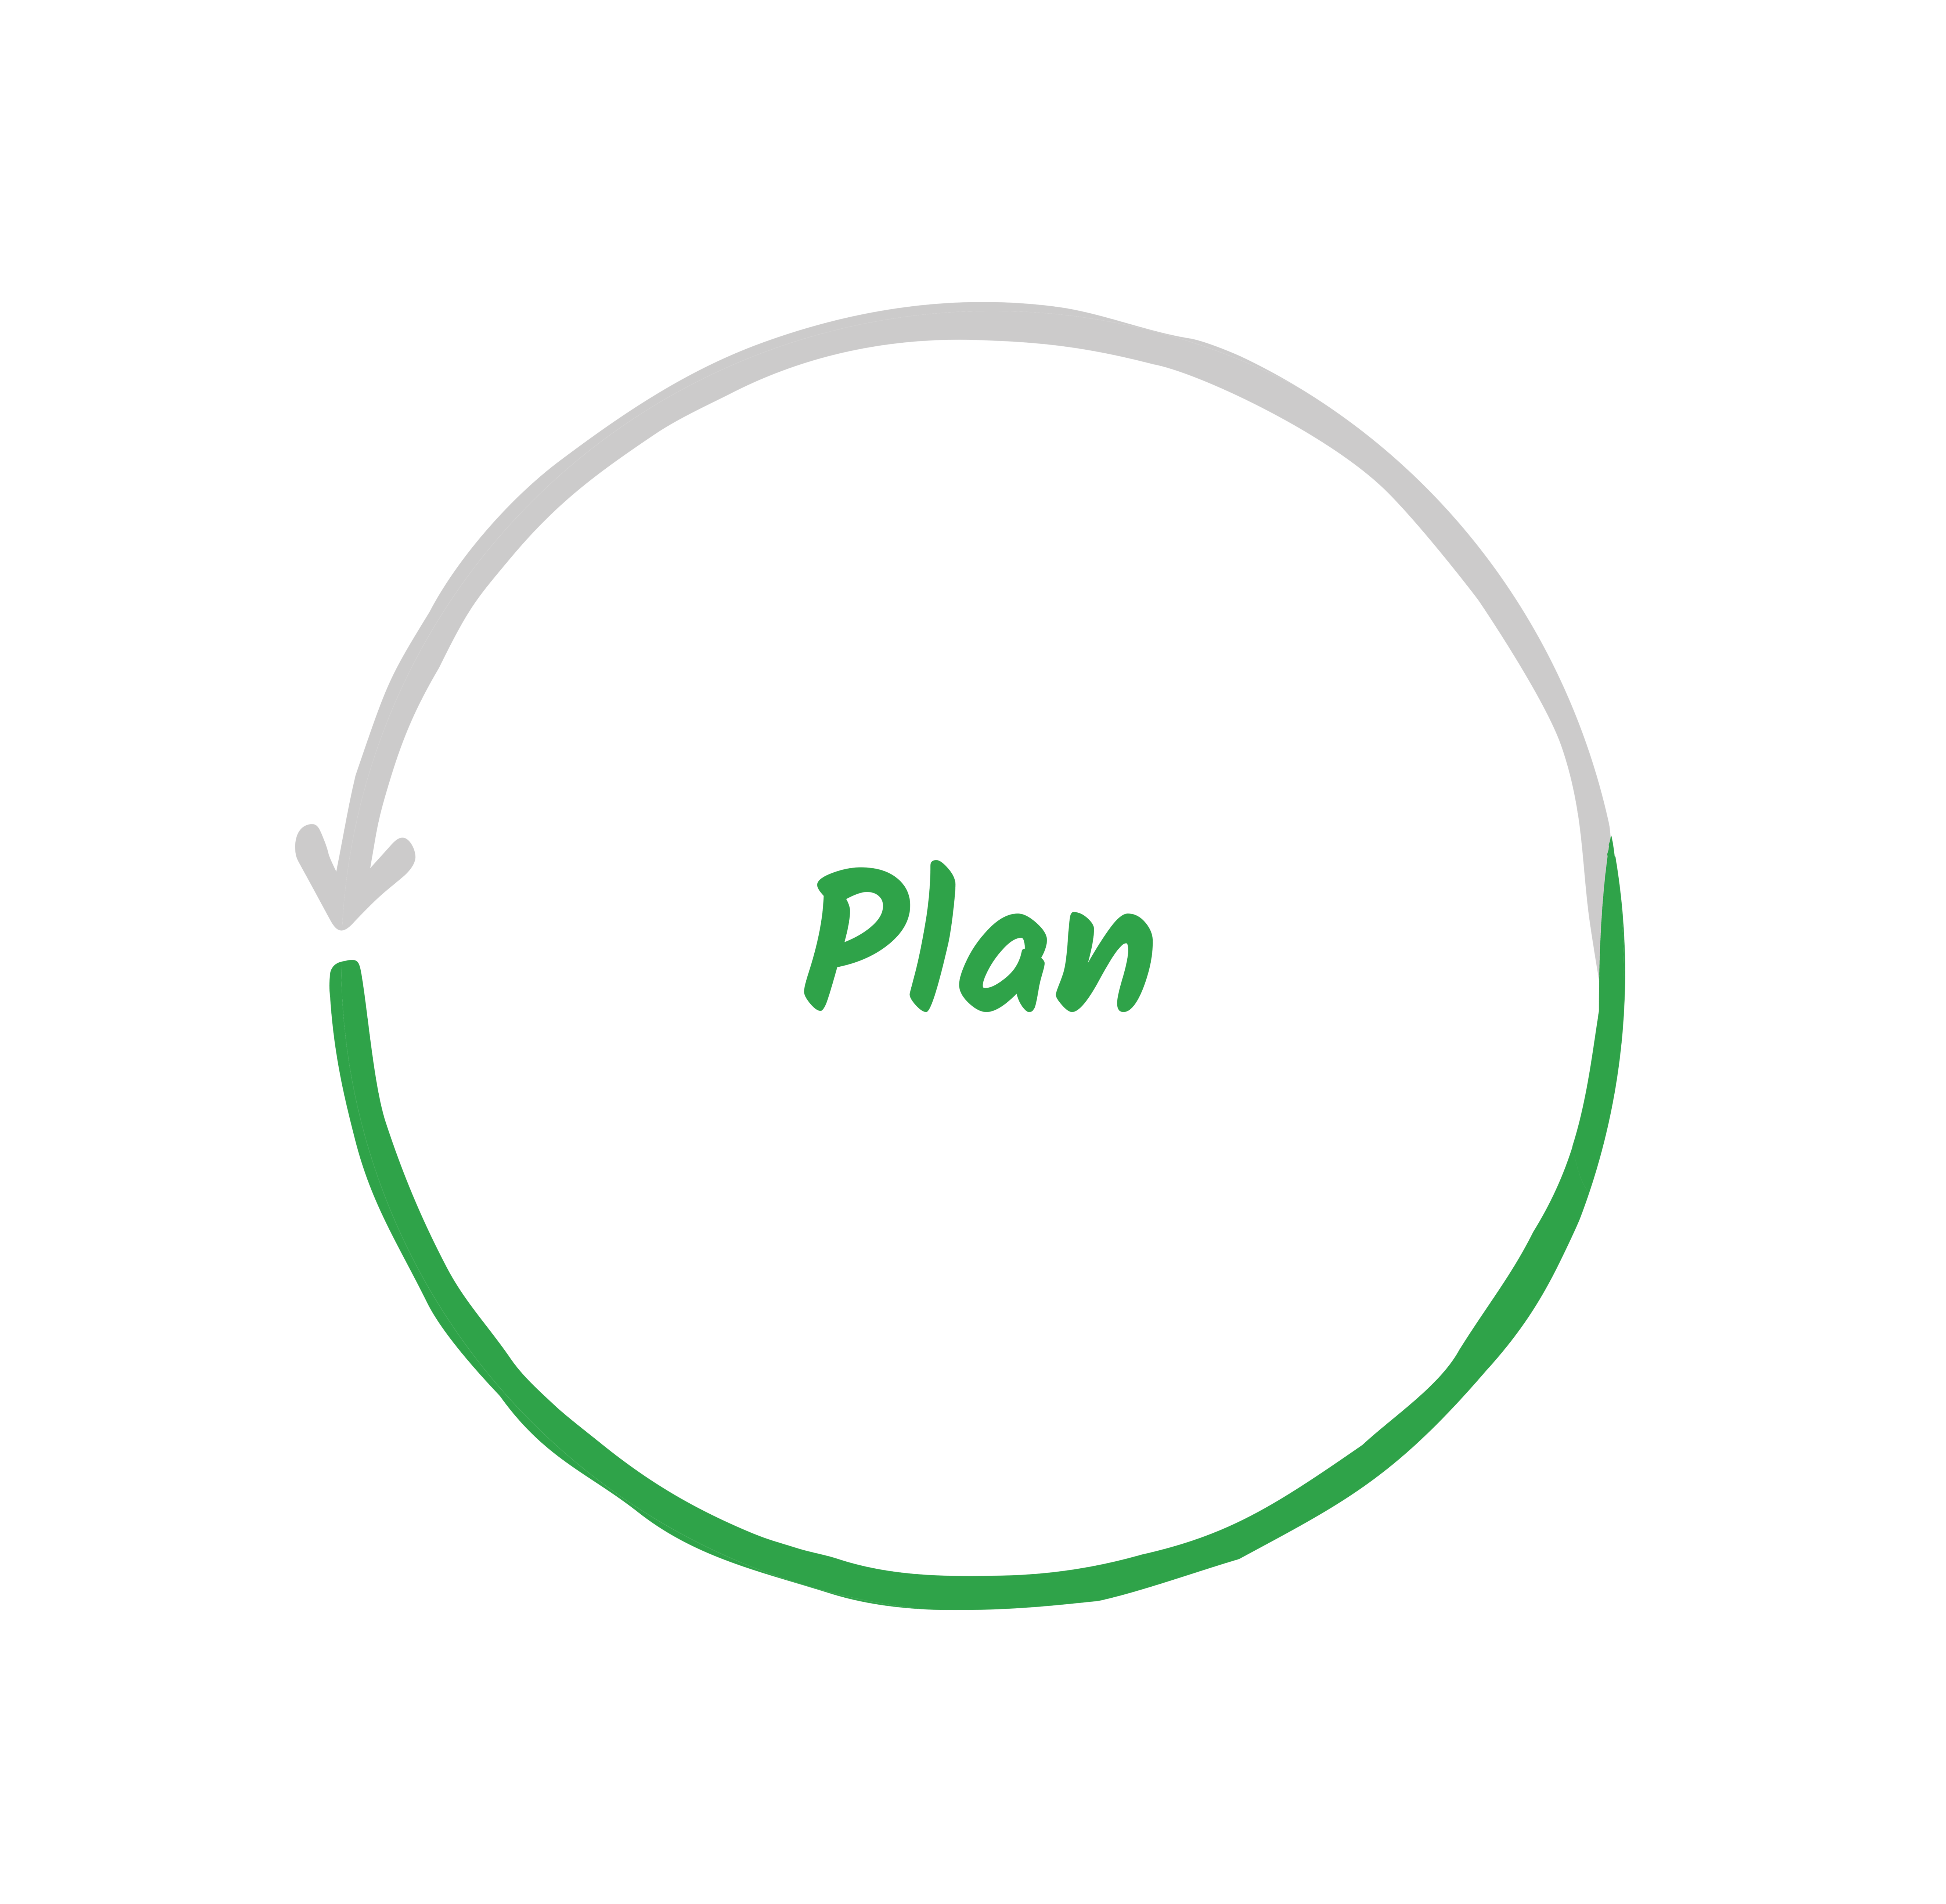 Plan stage for Implementation